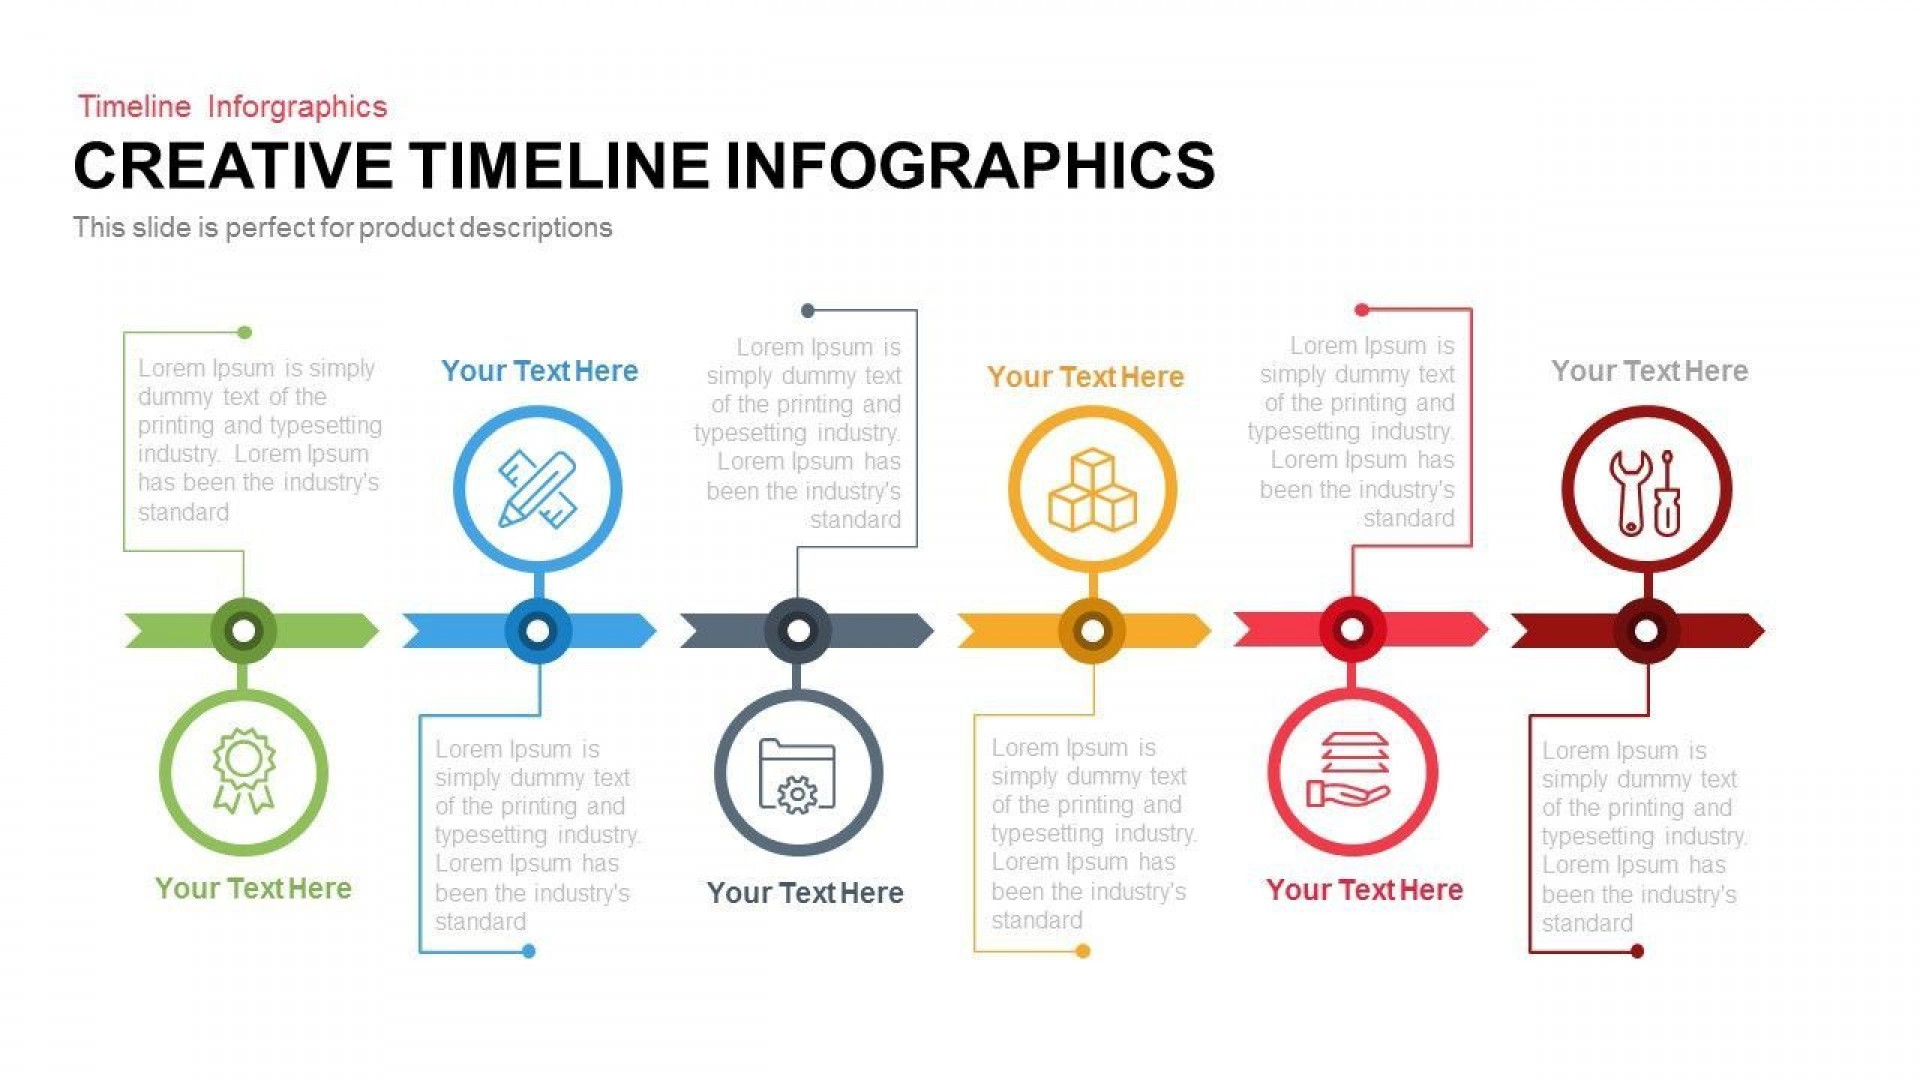 001 Exceptional Timeline Template Pptx Image  Powerpoint Project1920